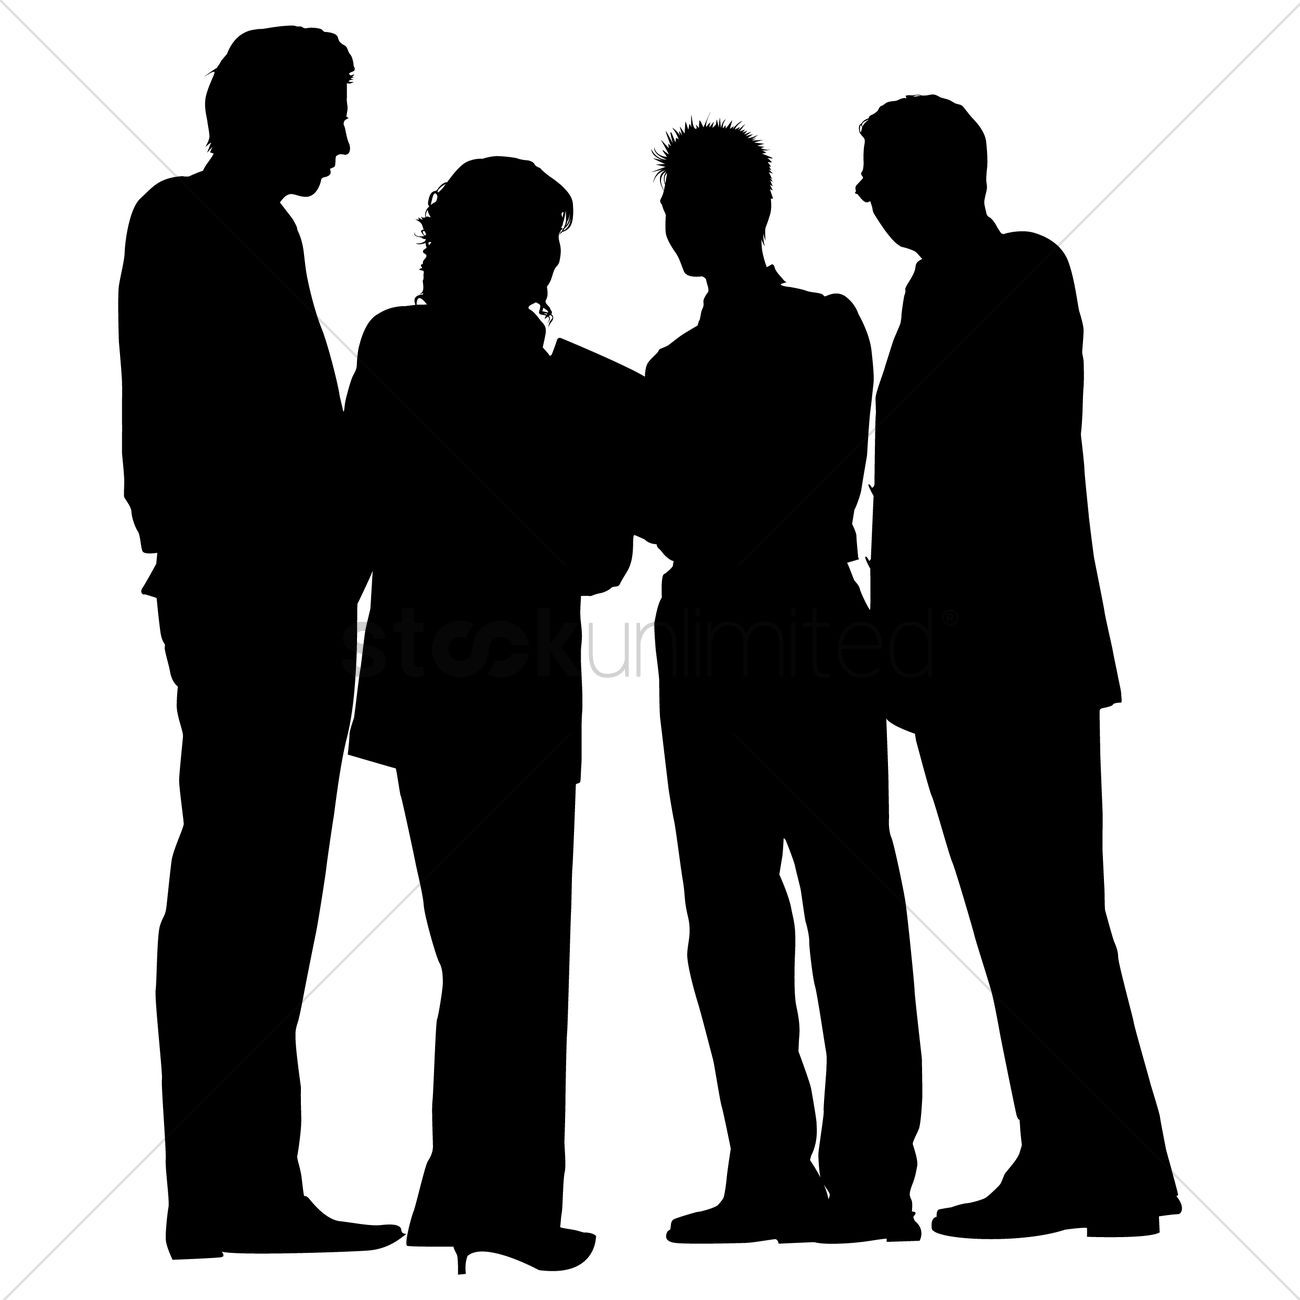 Group of business people standing silhouette Vector Image ... for Business People Silhouette Png  584dqh